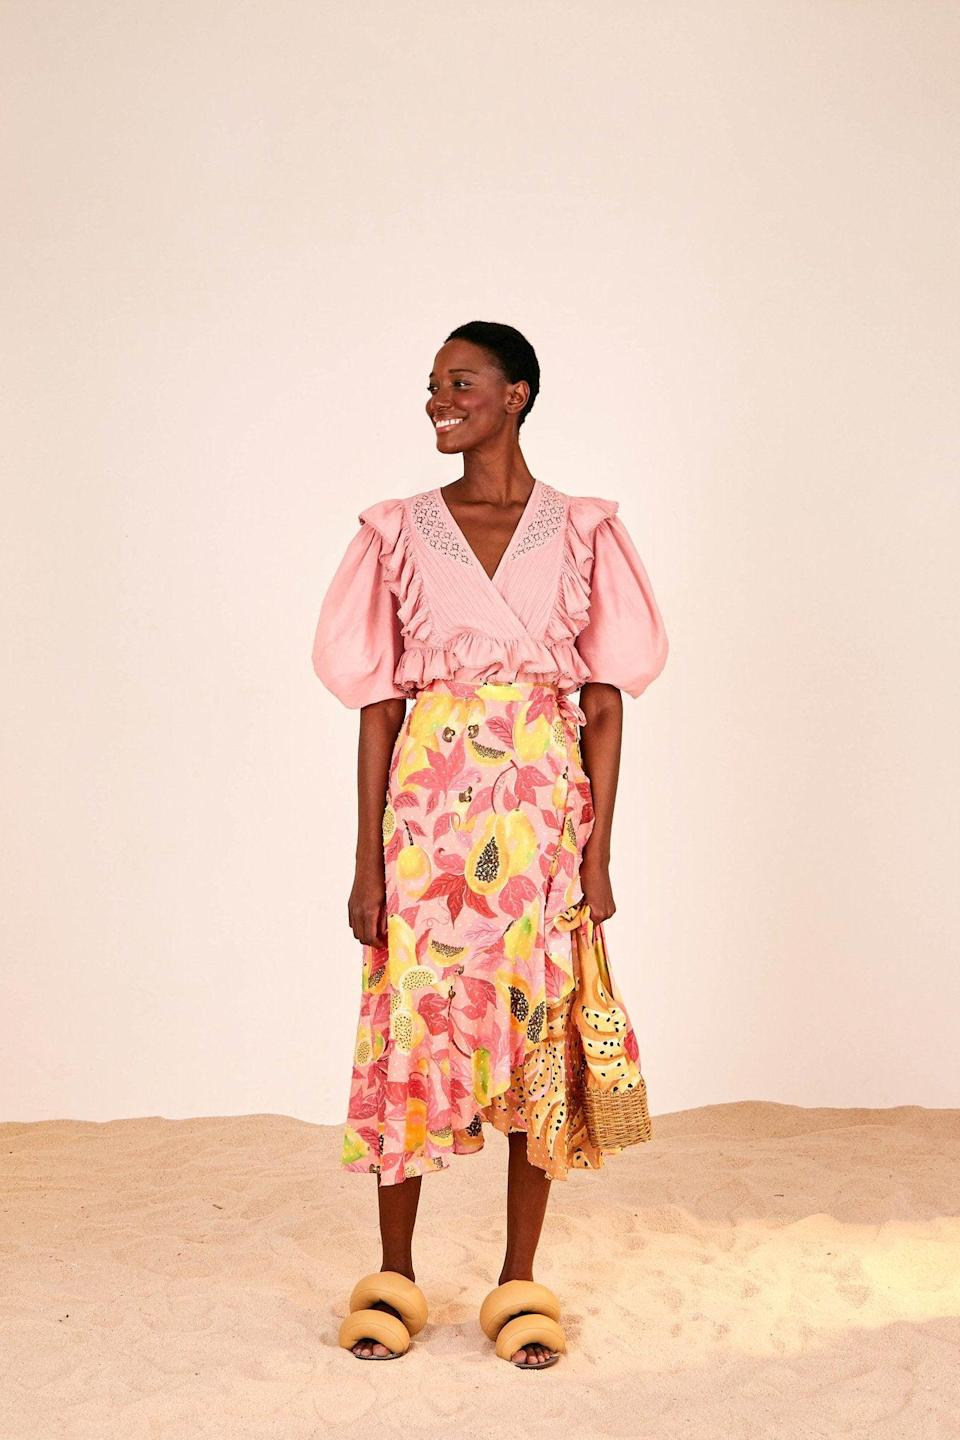 """<br><br><strong>Farm Rio</strong> Dual Prints Midi Skirt, $, available at <a href=""""https://go.skimresources.com/?id=30283X879131&url=https%3A%2F%2Fwww.farmrio.com%2Fcollections%2Fsale%2Fproducts%2Fdual-prints-midi-skirt"""" rel=""""nofollow noopener"""" target=""""_blank"""" data-ylk=""""slk:Farm Rio"""" class=""""link rapid-noclick-resp"""">Farm Rio</a>"""